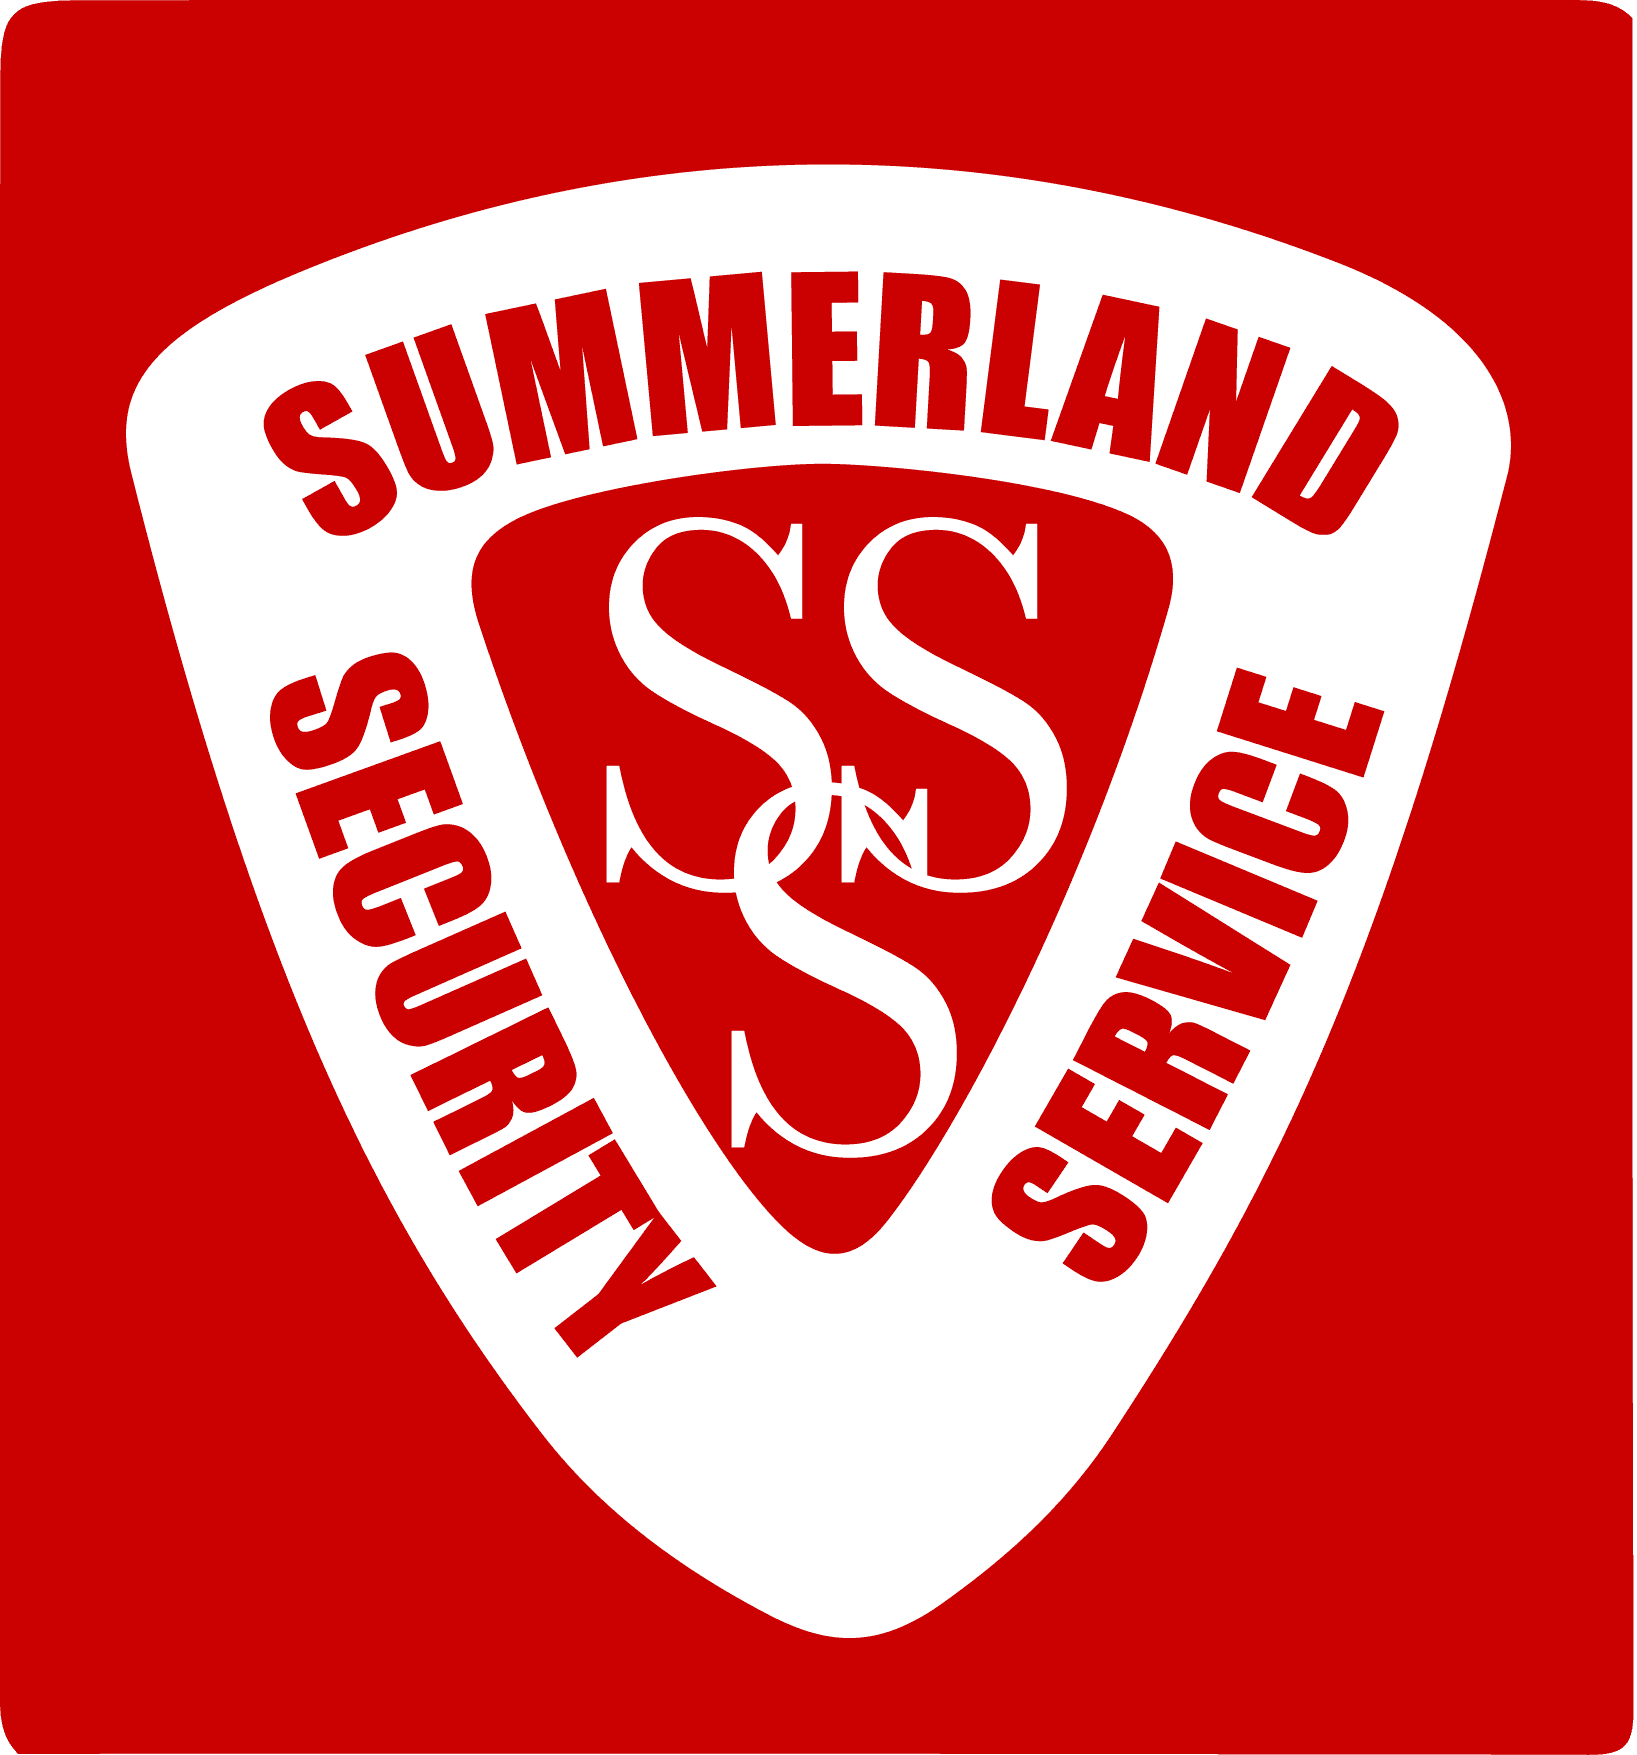 summerland security service logo